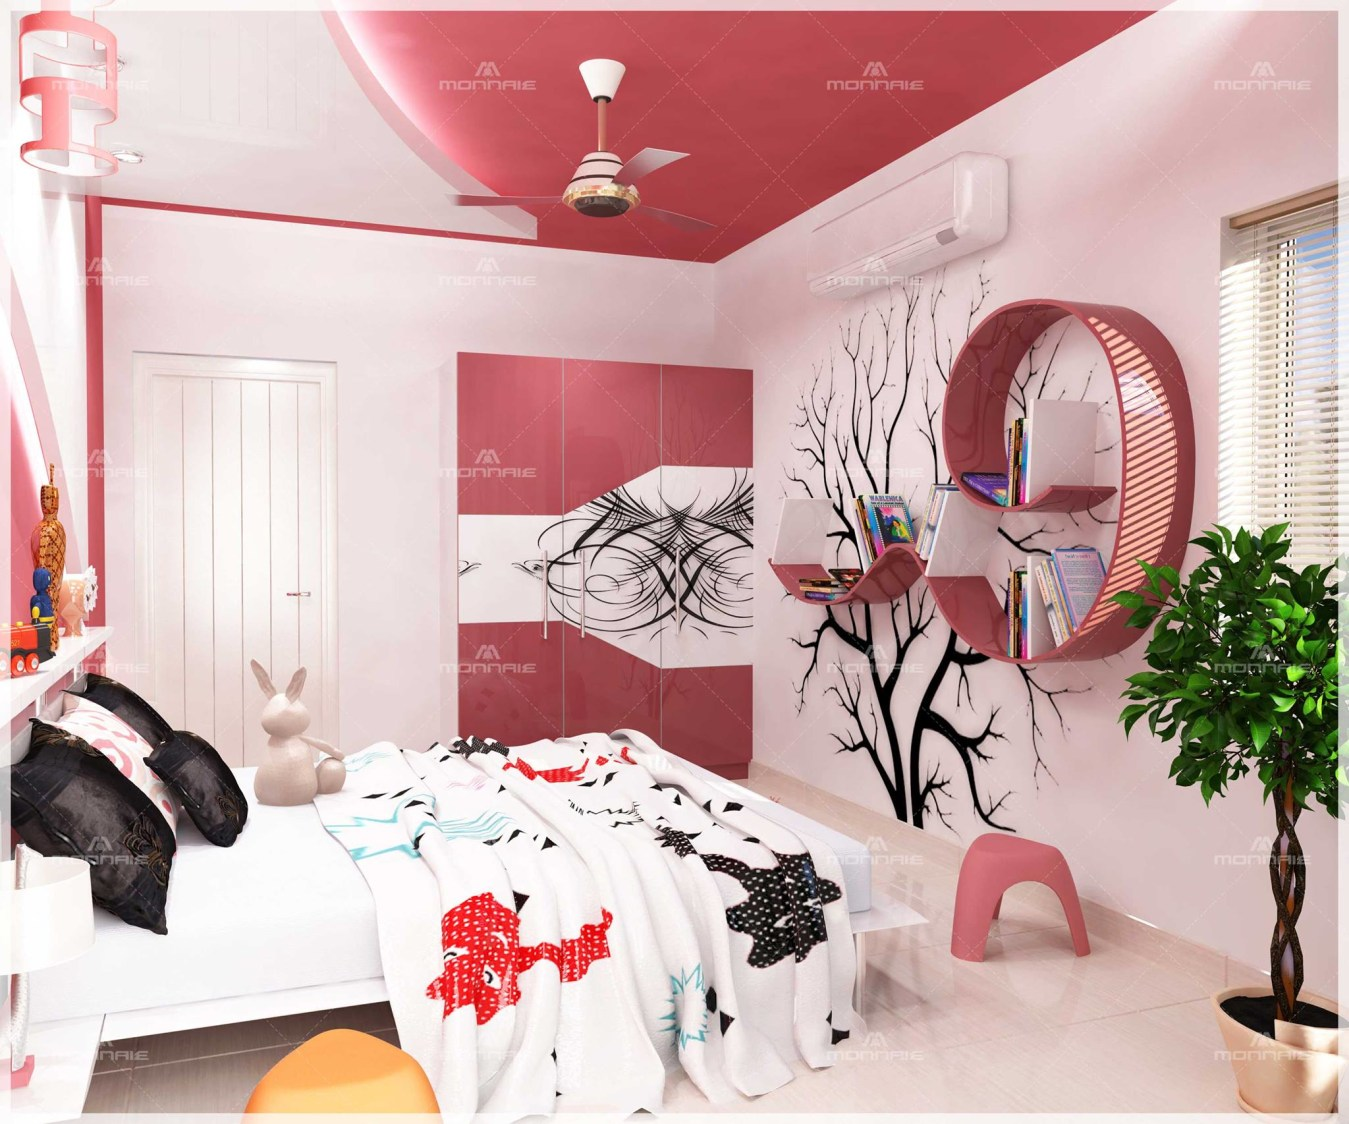 Cerise Shaded Kids Bedroom With Wall Art by Monnaie Architects Bedroom Contemporary | Interior Design Photos & Ideas